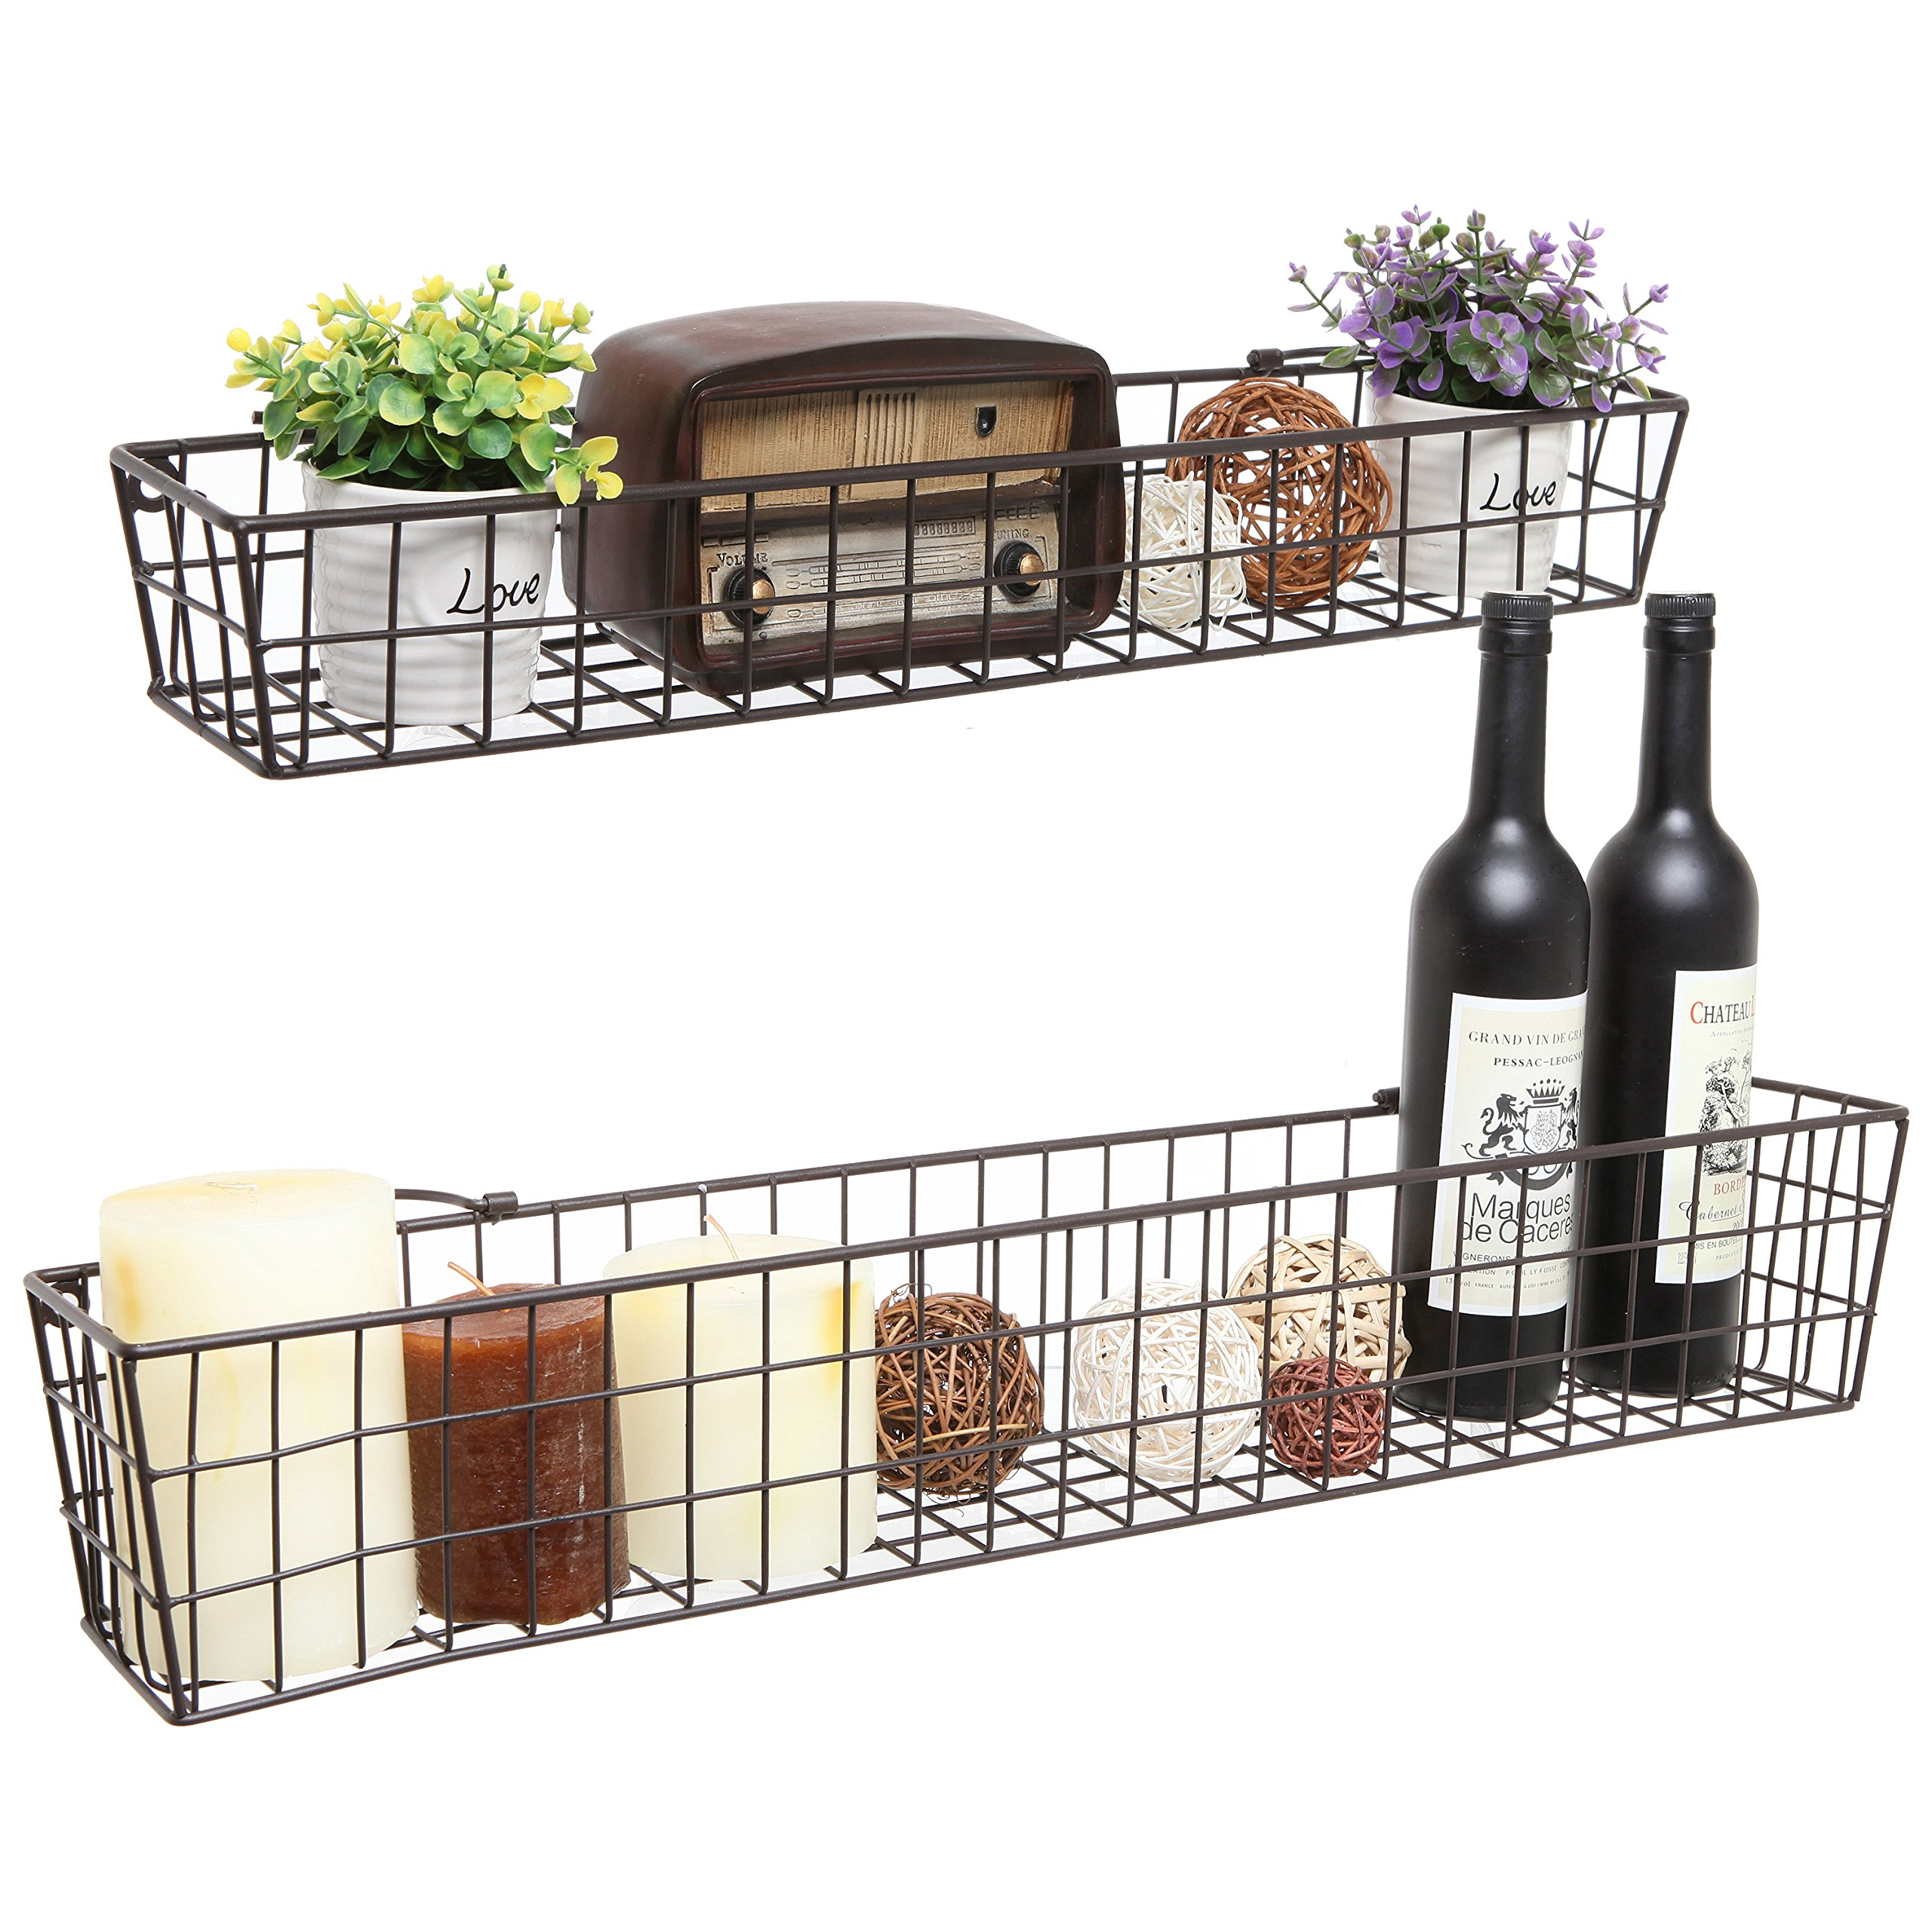 Superbe Set Of 2 Brown Country Rustic Wall Mounted Openwork Metal Wire Storage  Basket Shelves / Display